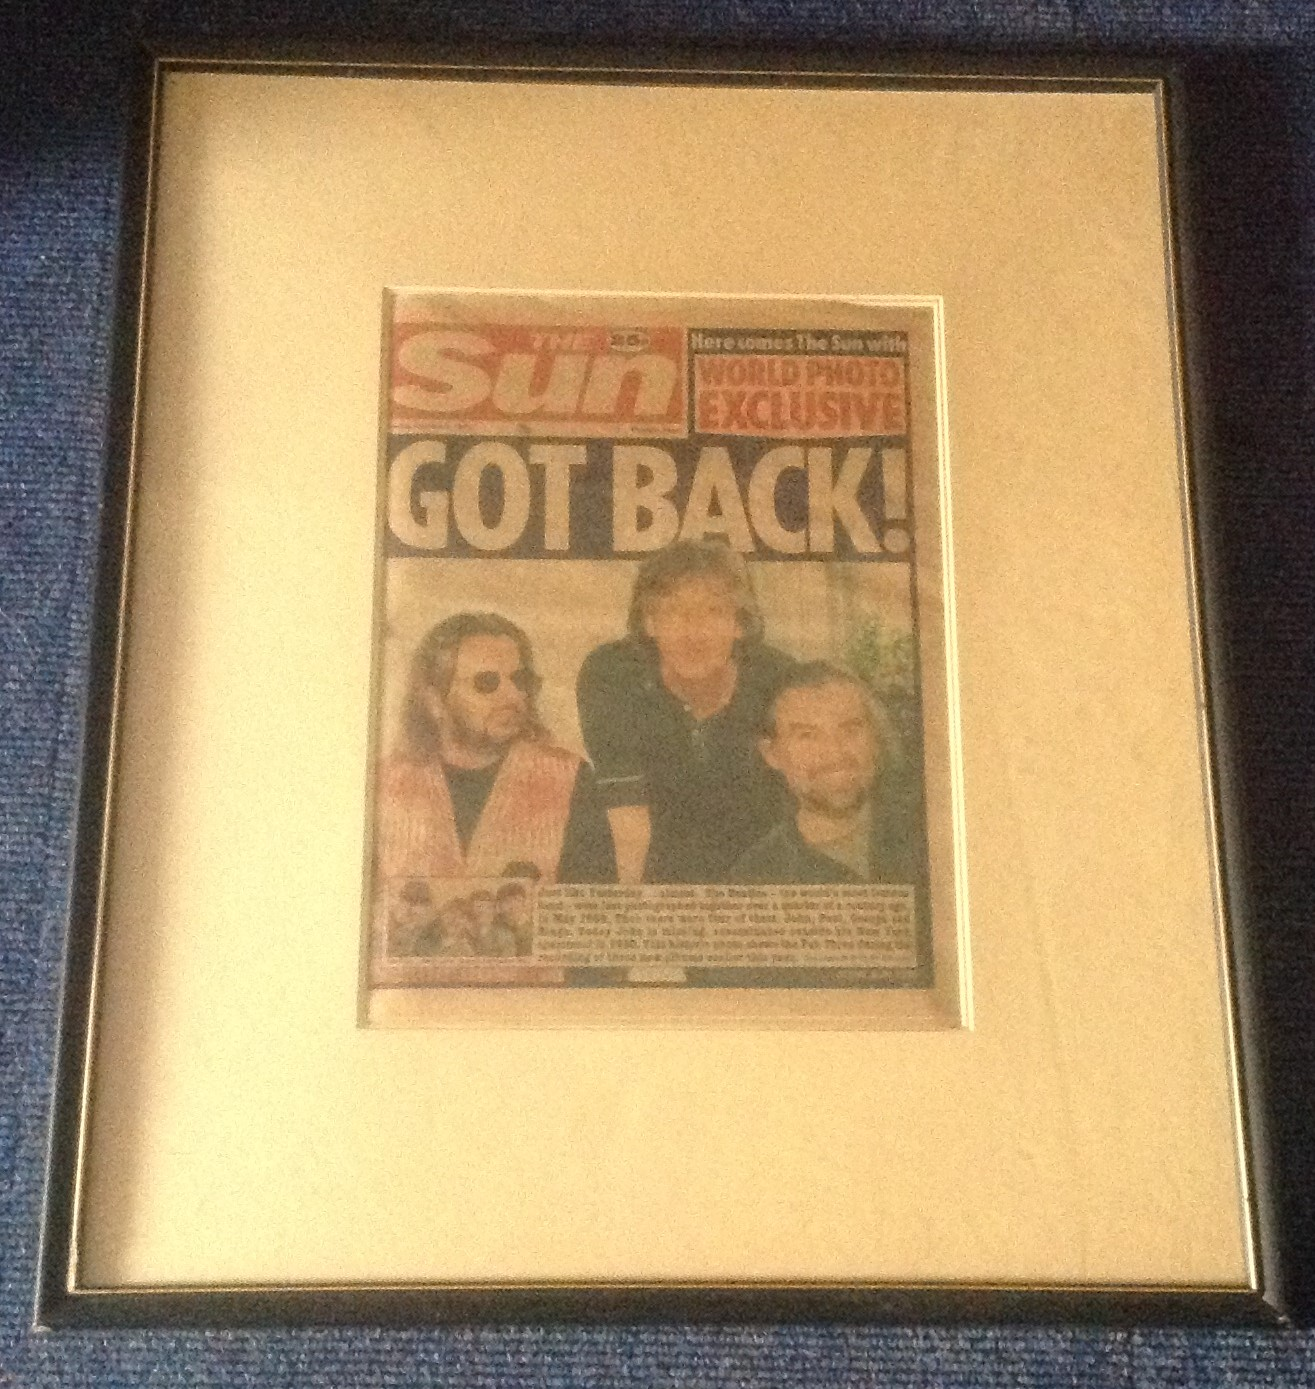 Lot 48 - The Beatles 3/10/1995 original Sun Newspaper for the reforming of the group for the Anthology